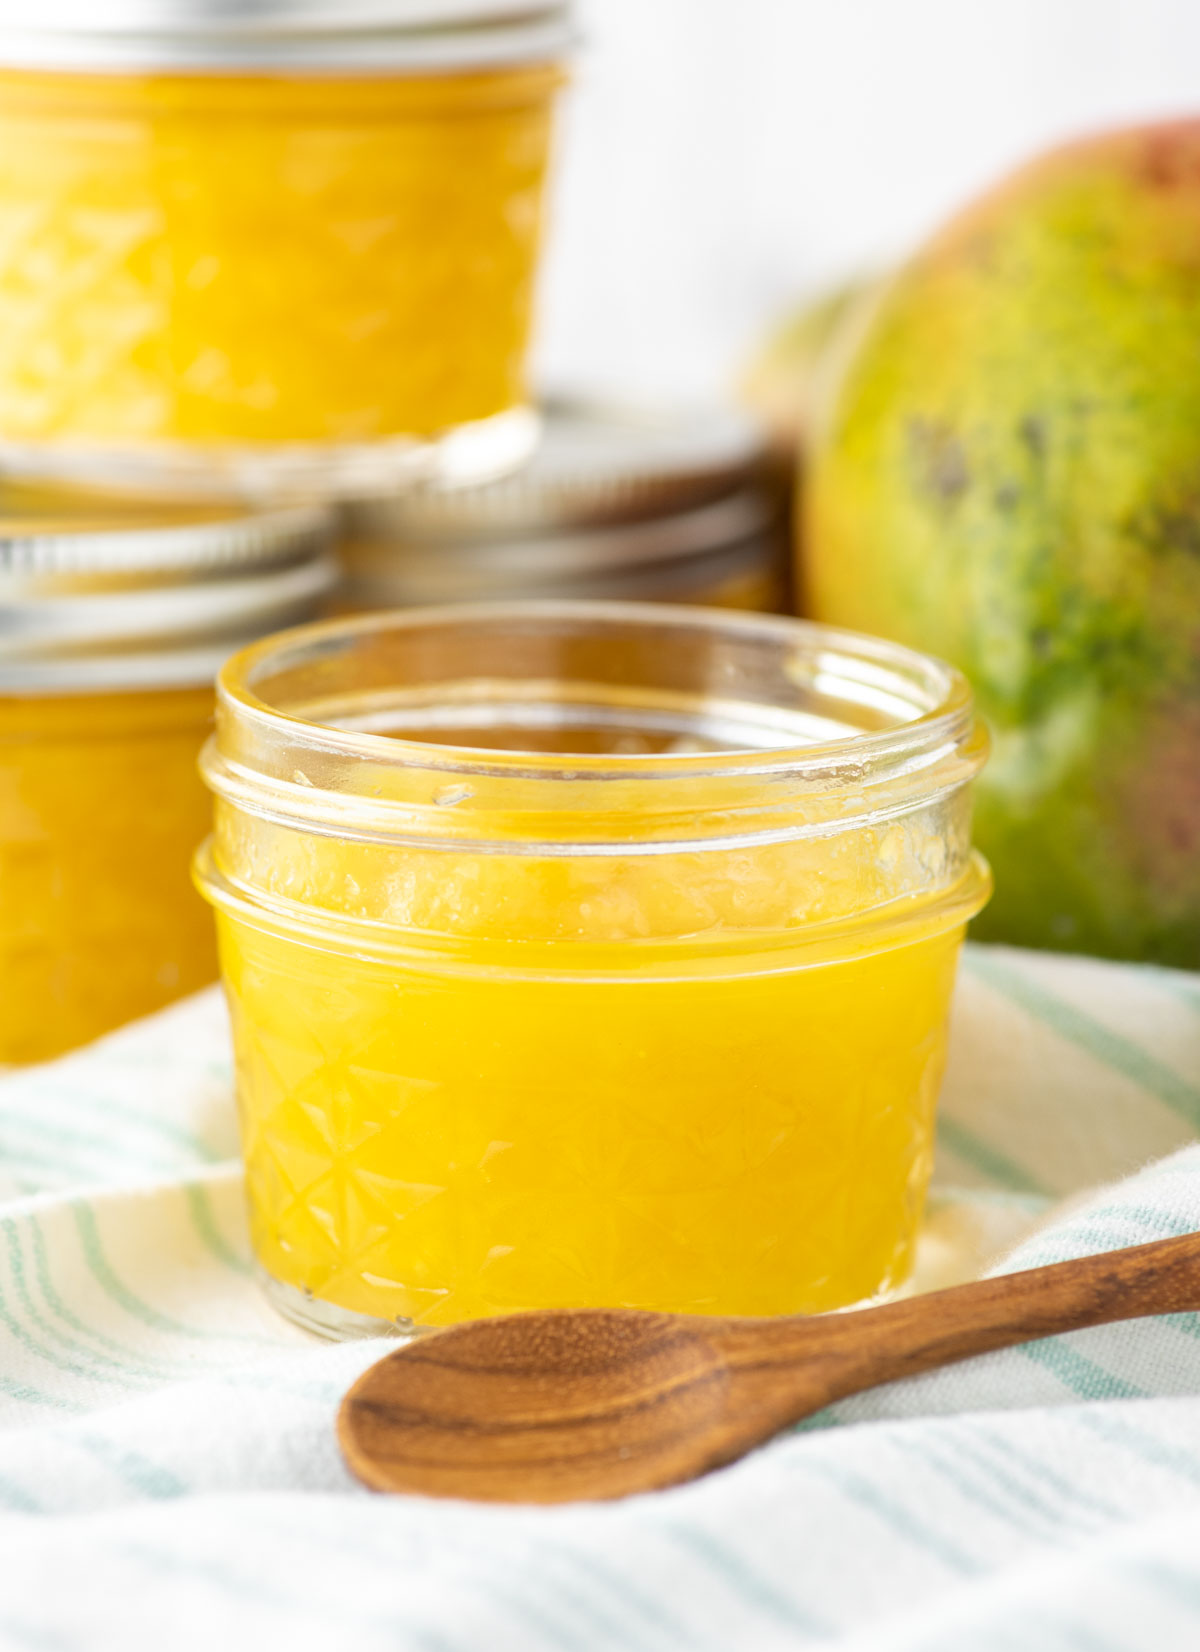 mango jam in glass jar with more jars in background